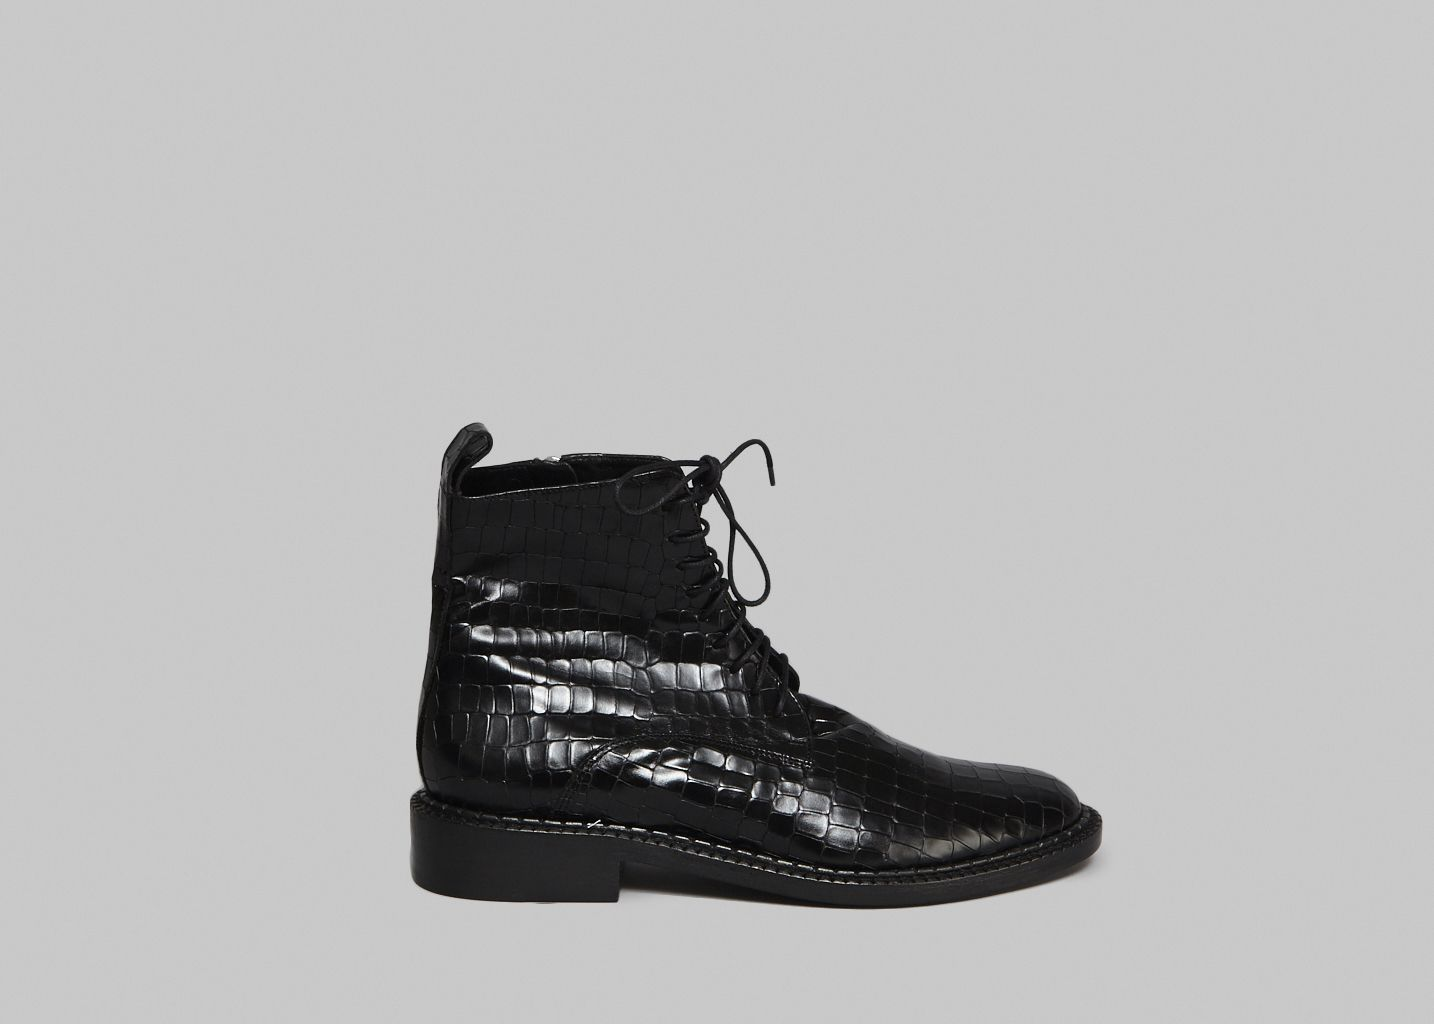 Bottines Jacenc - Robert Clergerie